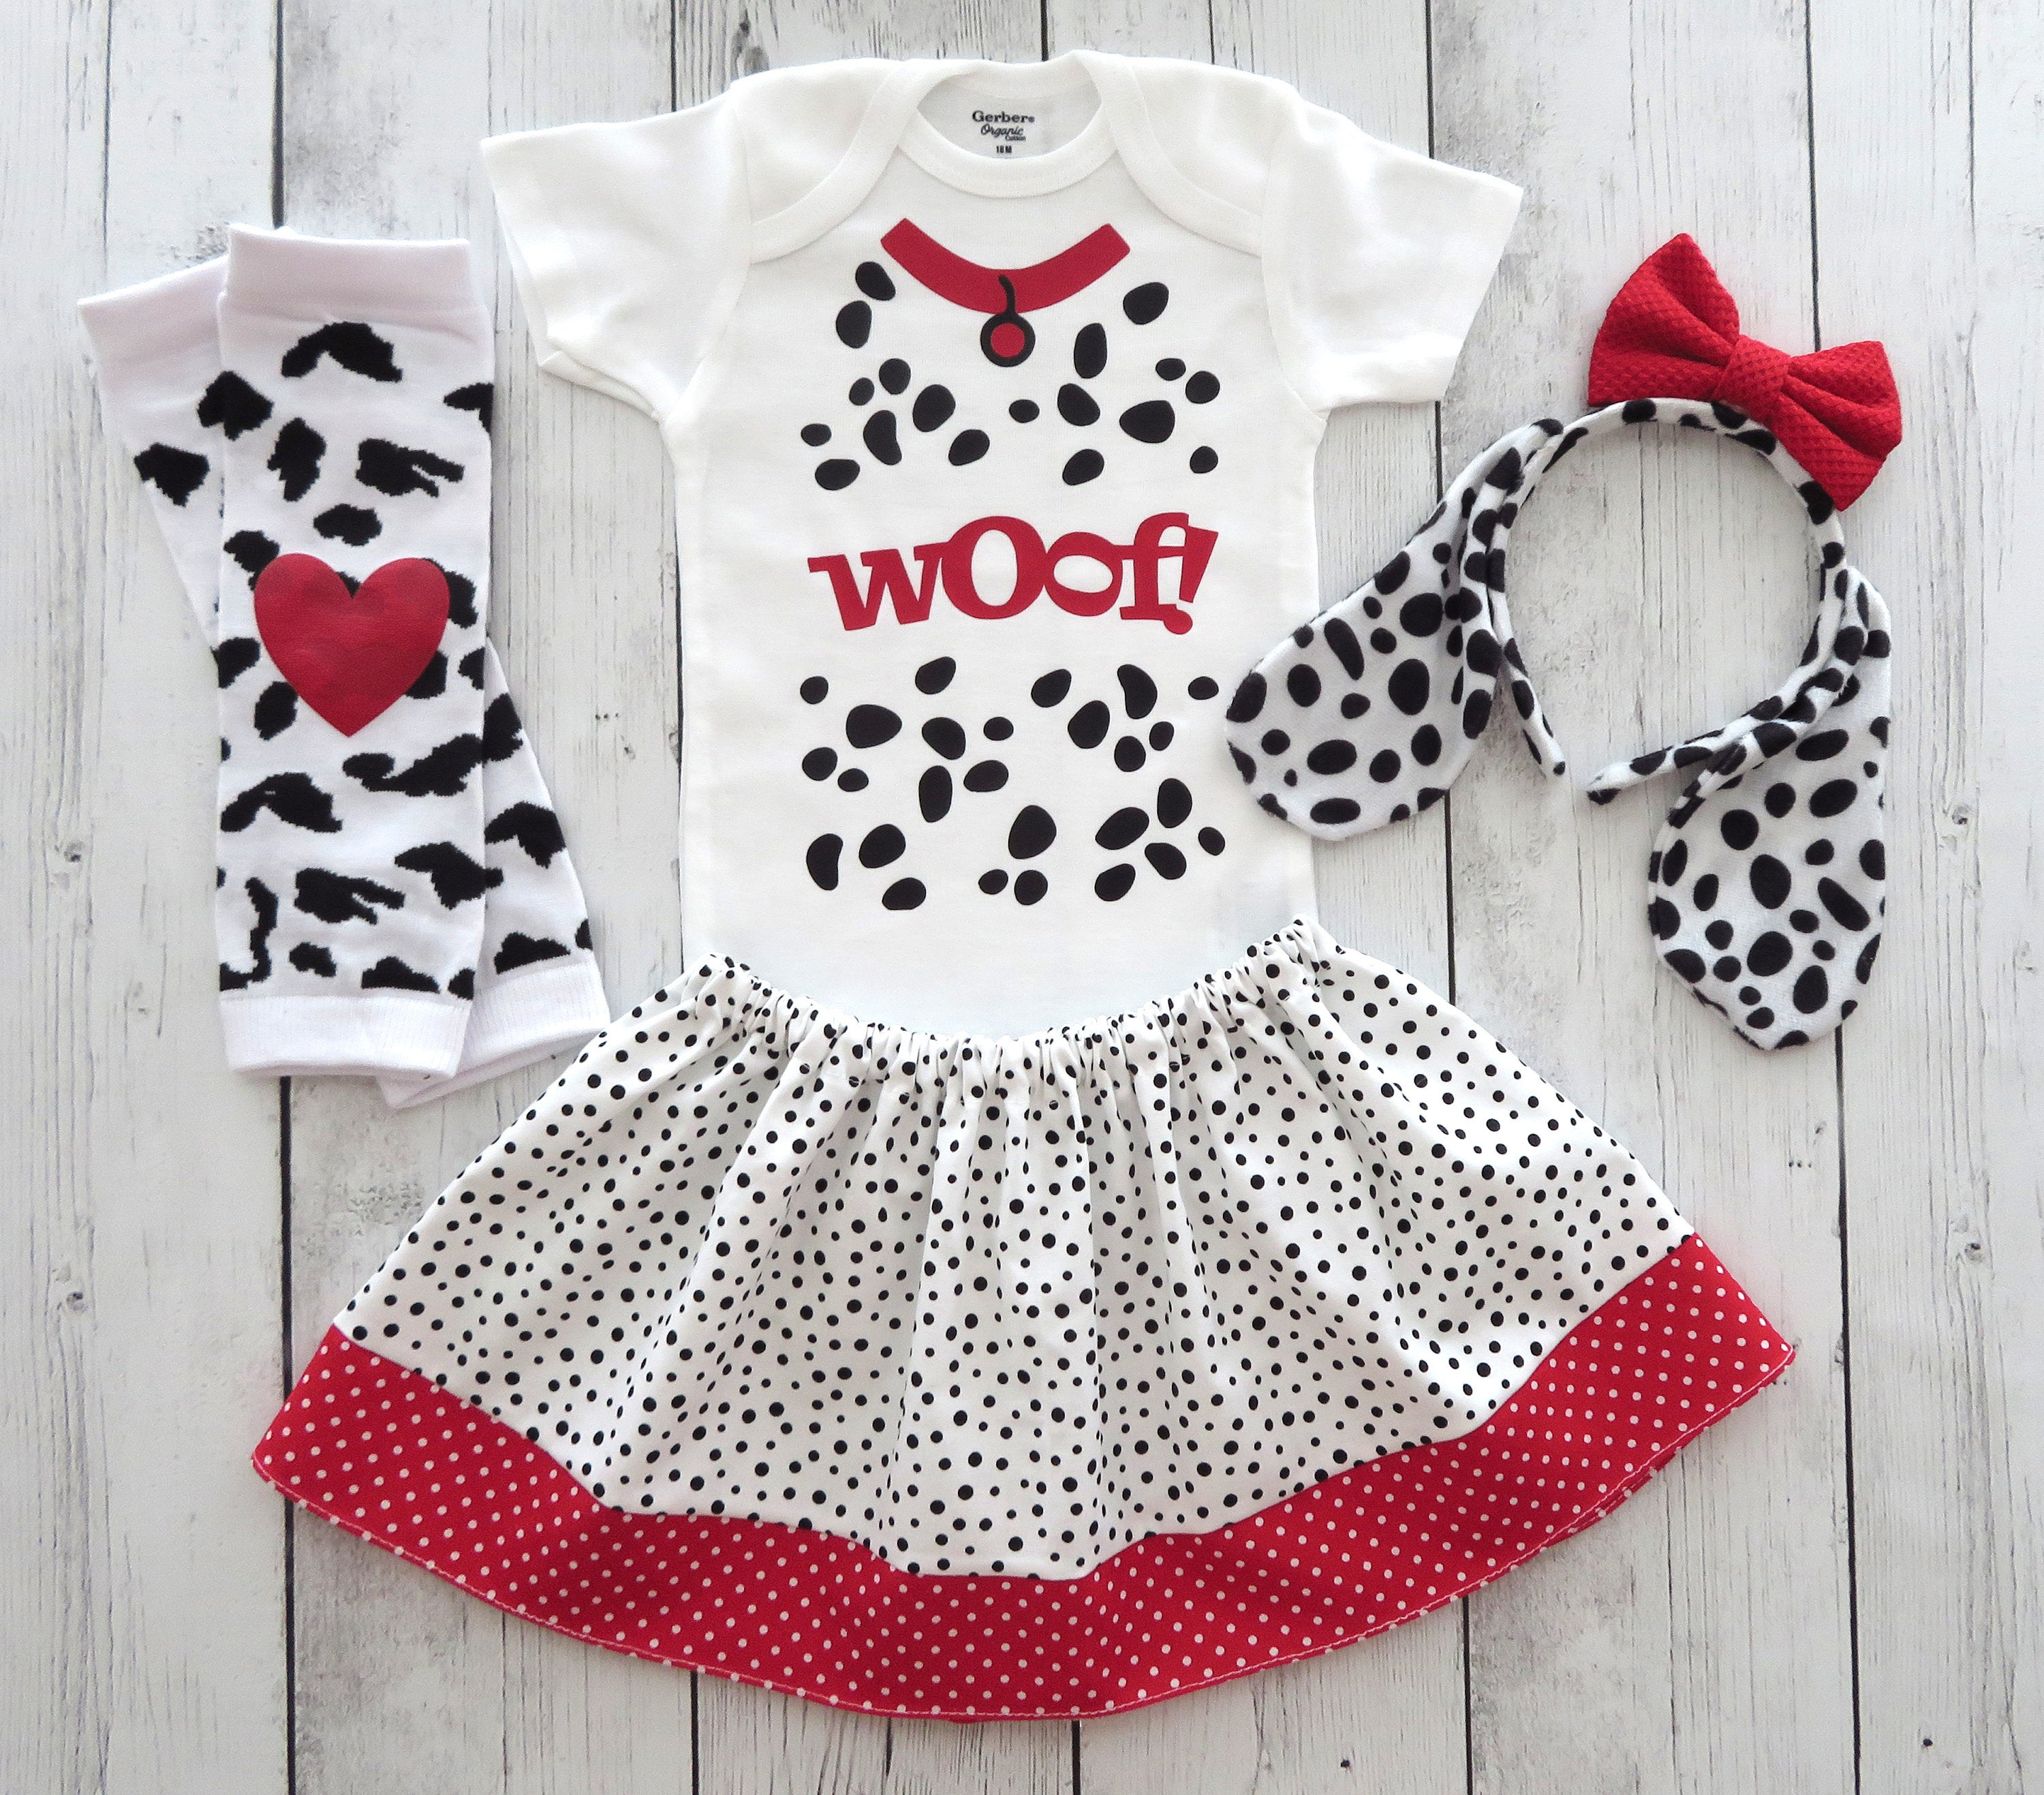 Dalmatian Puppy Halloween Costume in Sizes Baby to Toddler -baby girl halloween costume, puppy costume, dog ears, dog halloween costume girl